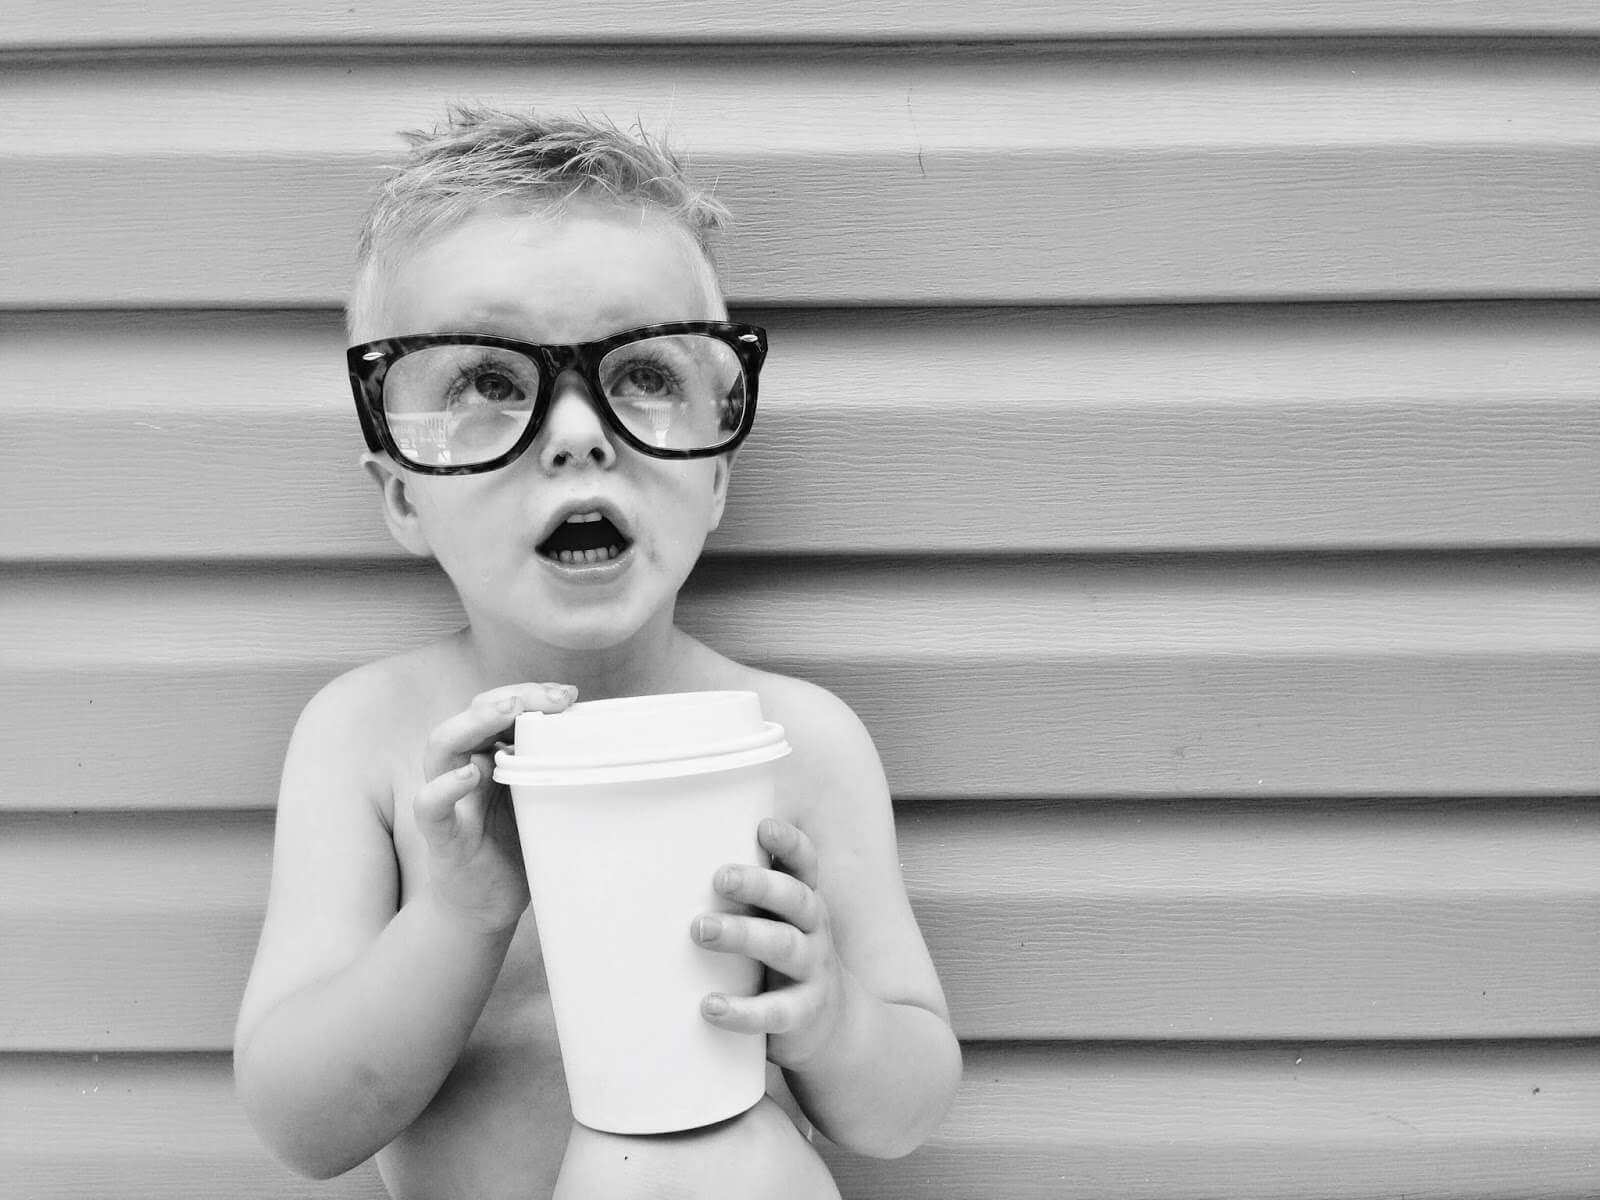 funny toddler with glasses and coffee